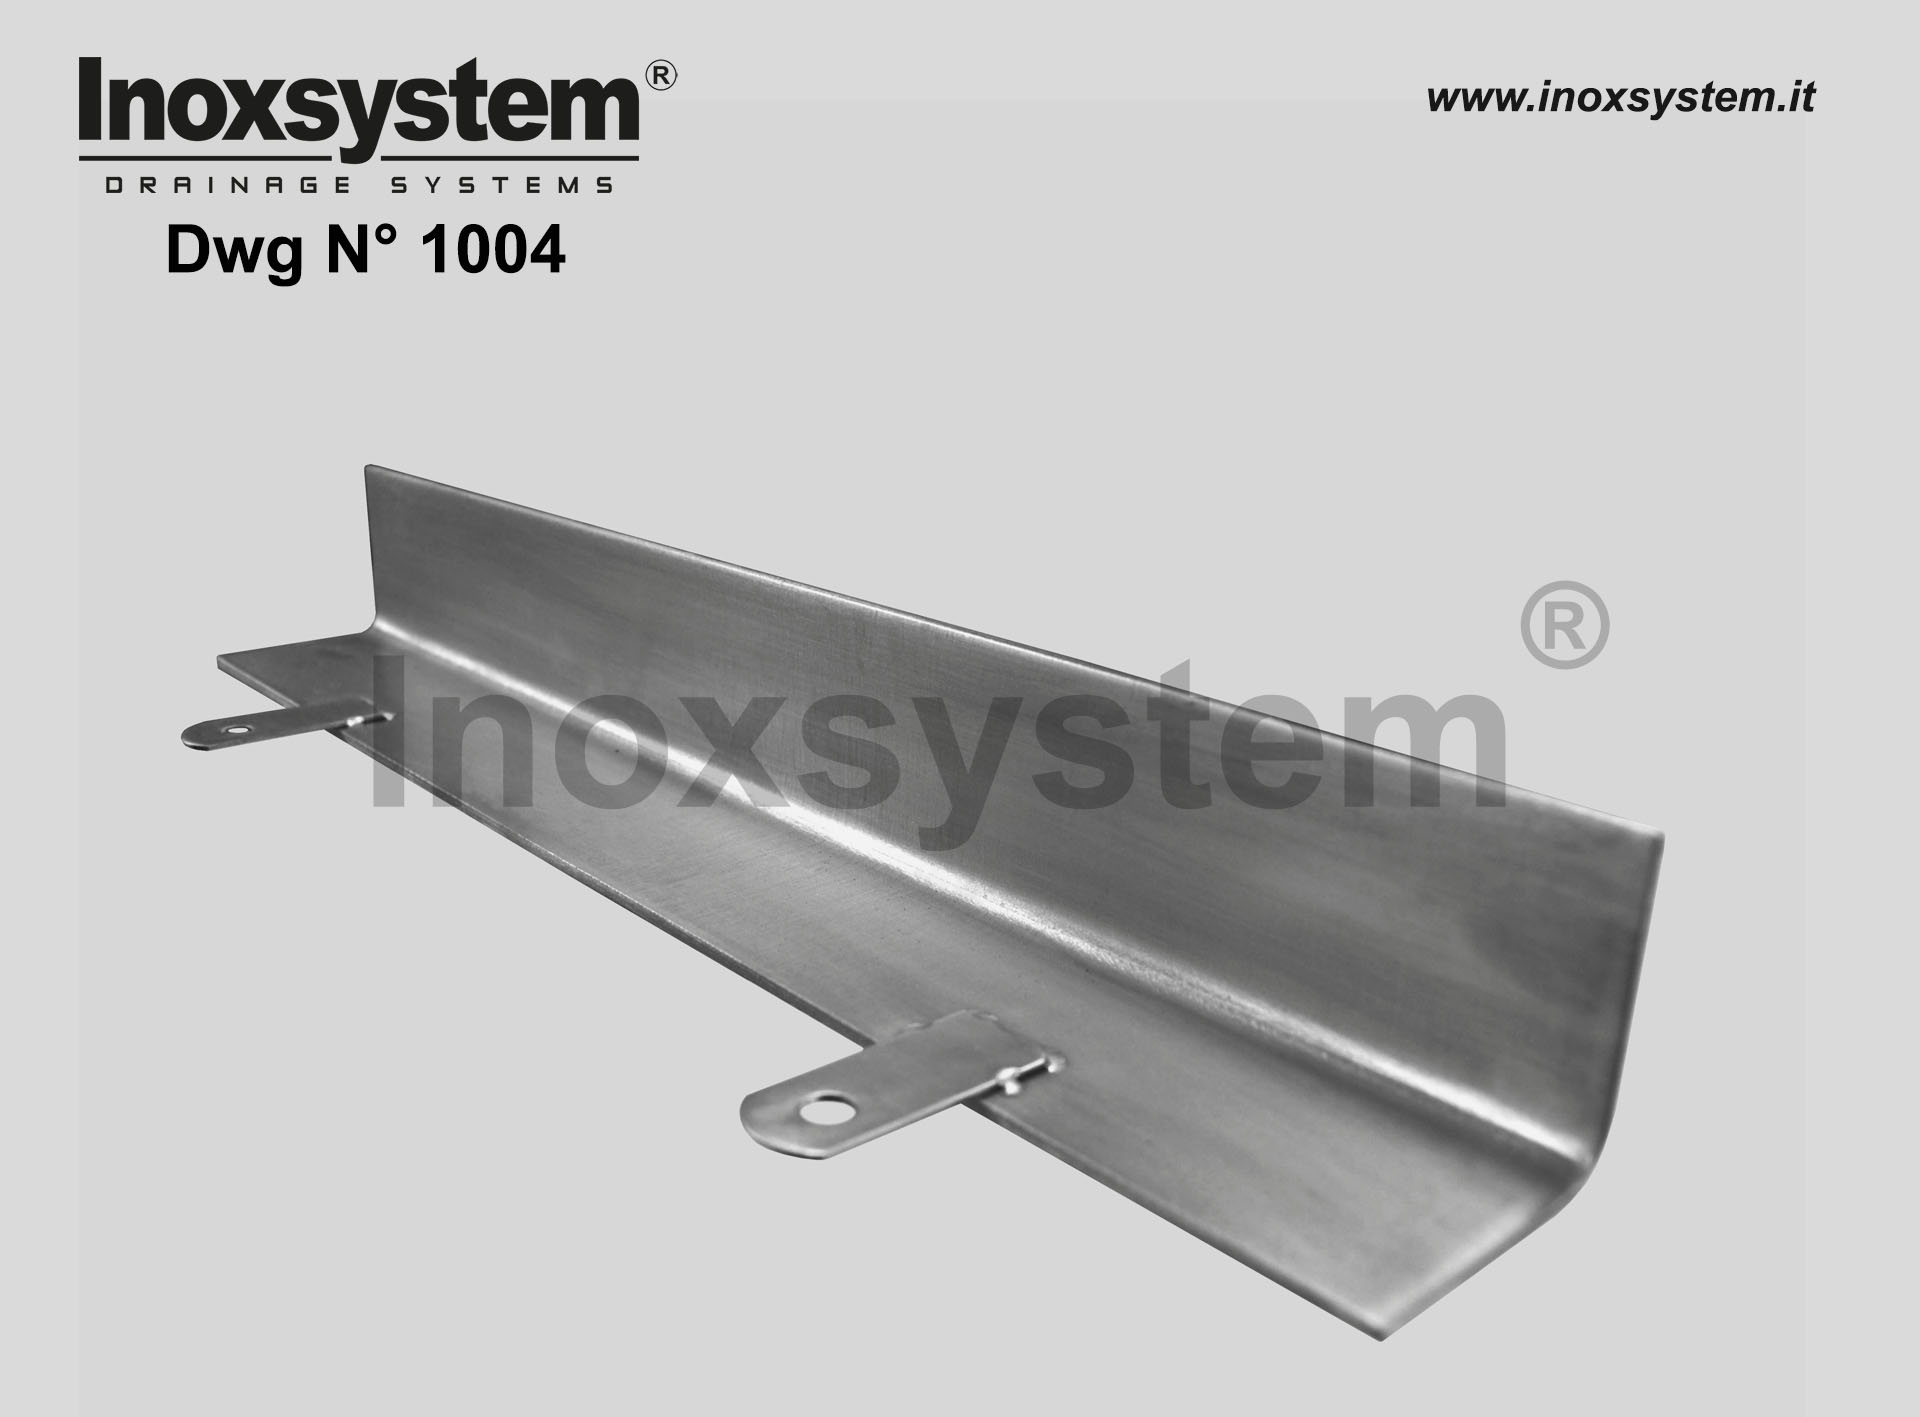 Stainless steel terminal profiles or floor protection edges DWG 1004